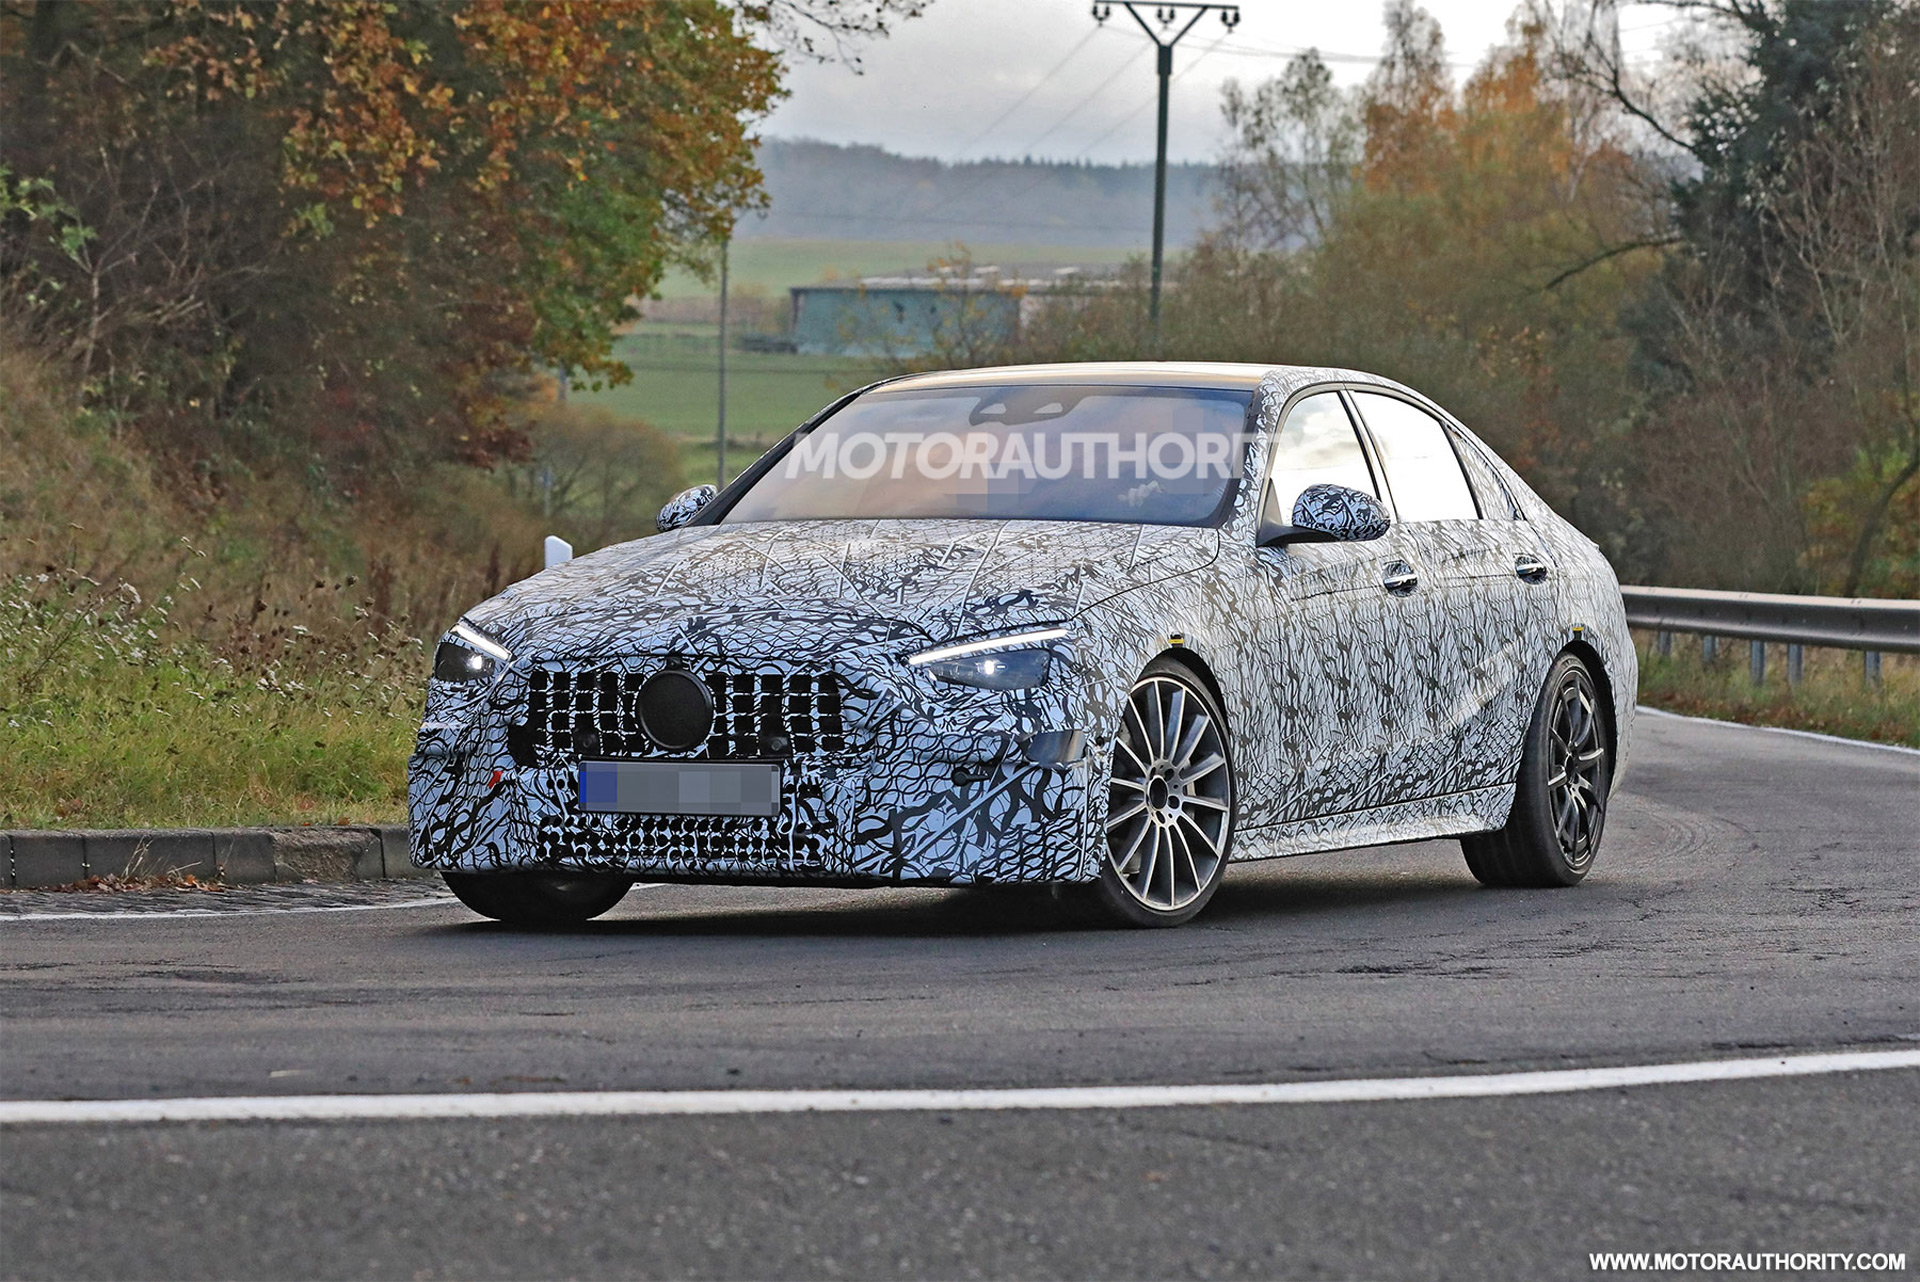 Is Merceces New C63 To Porky To Run With The Competition? Four Banger With Electric Assist Vs V8s